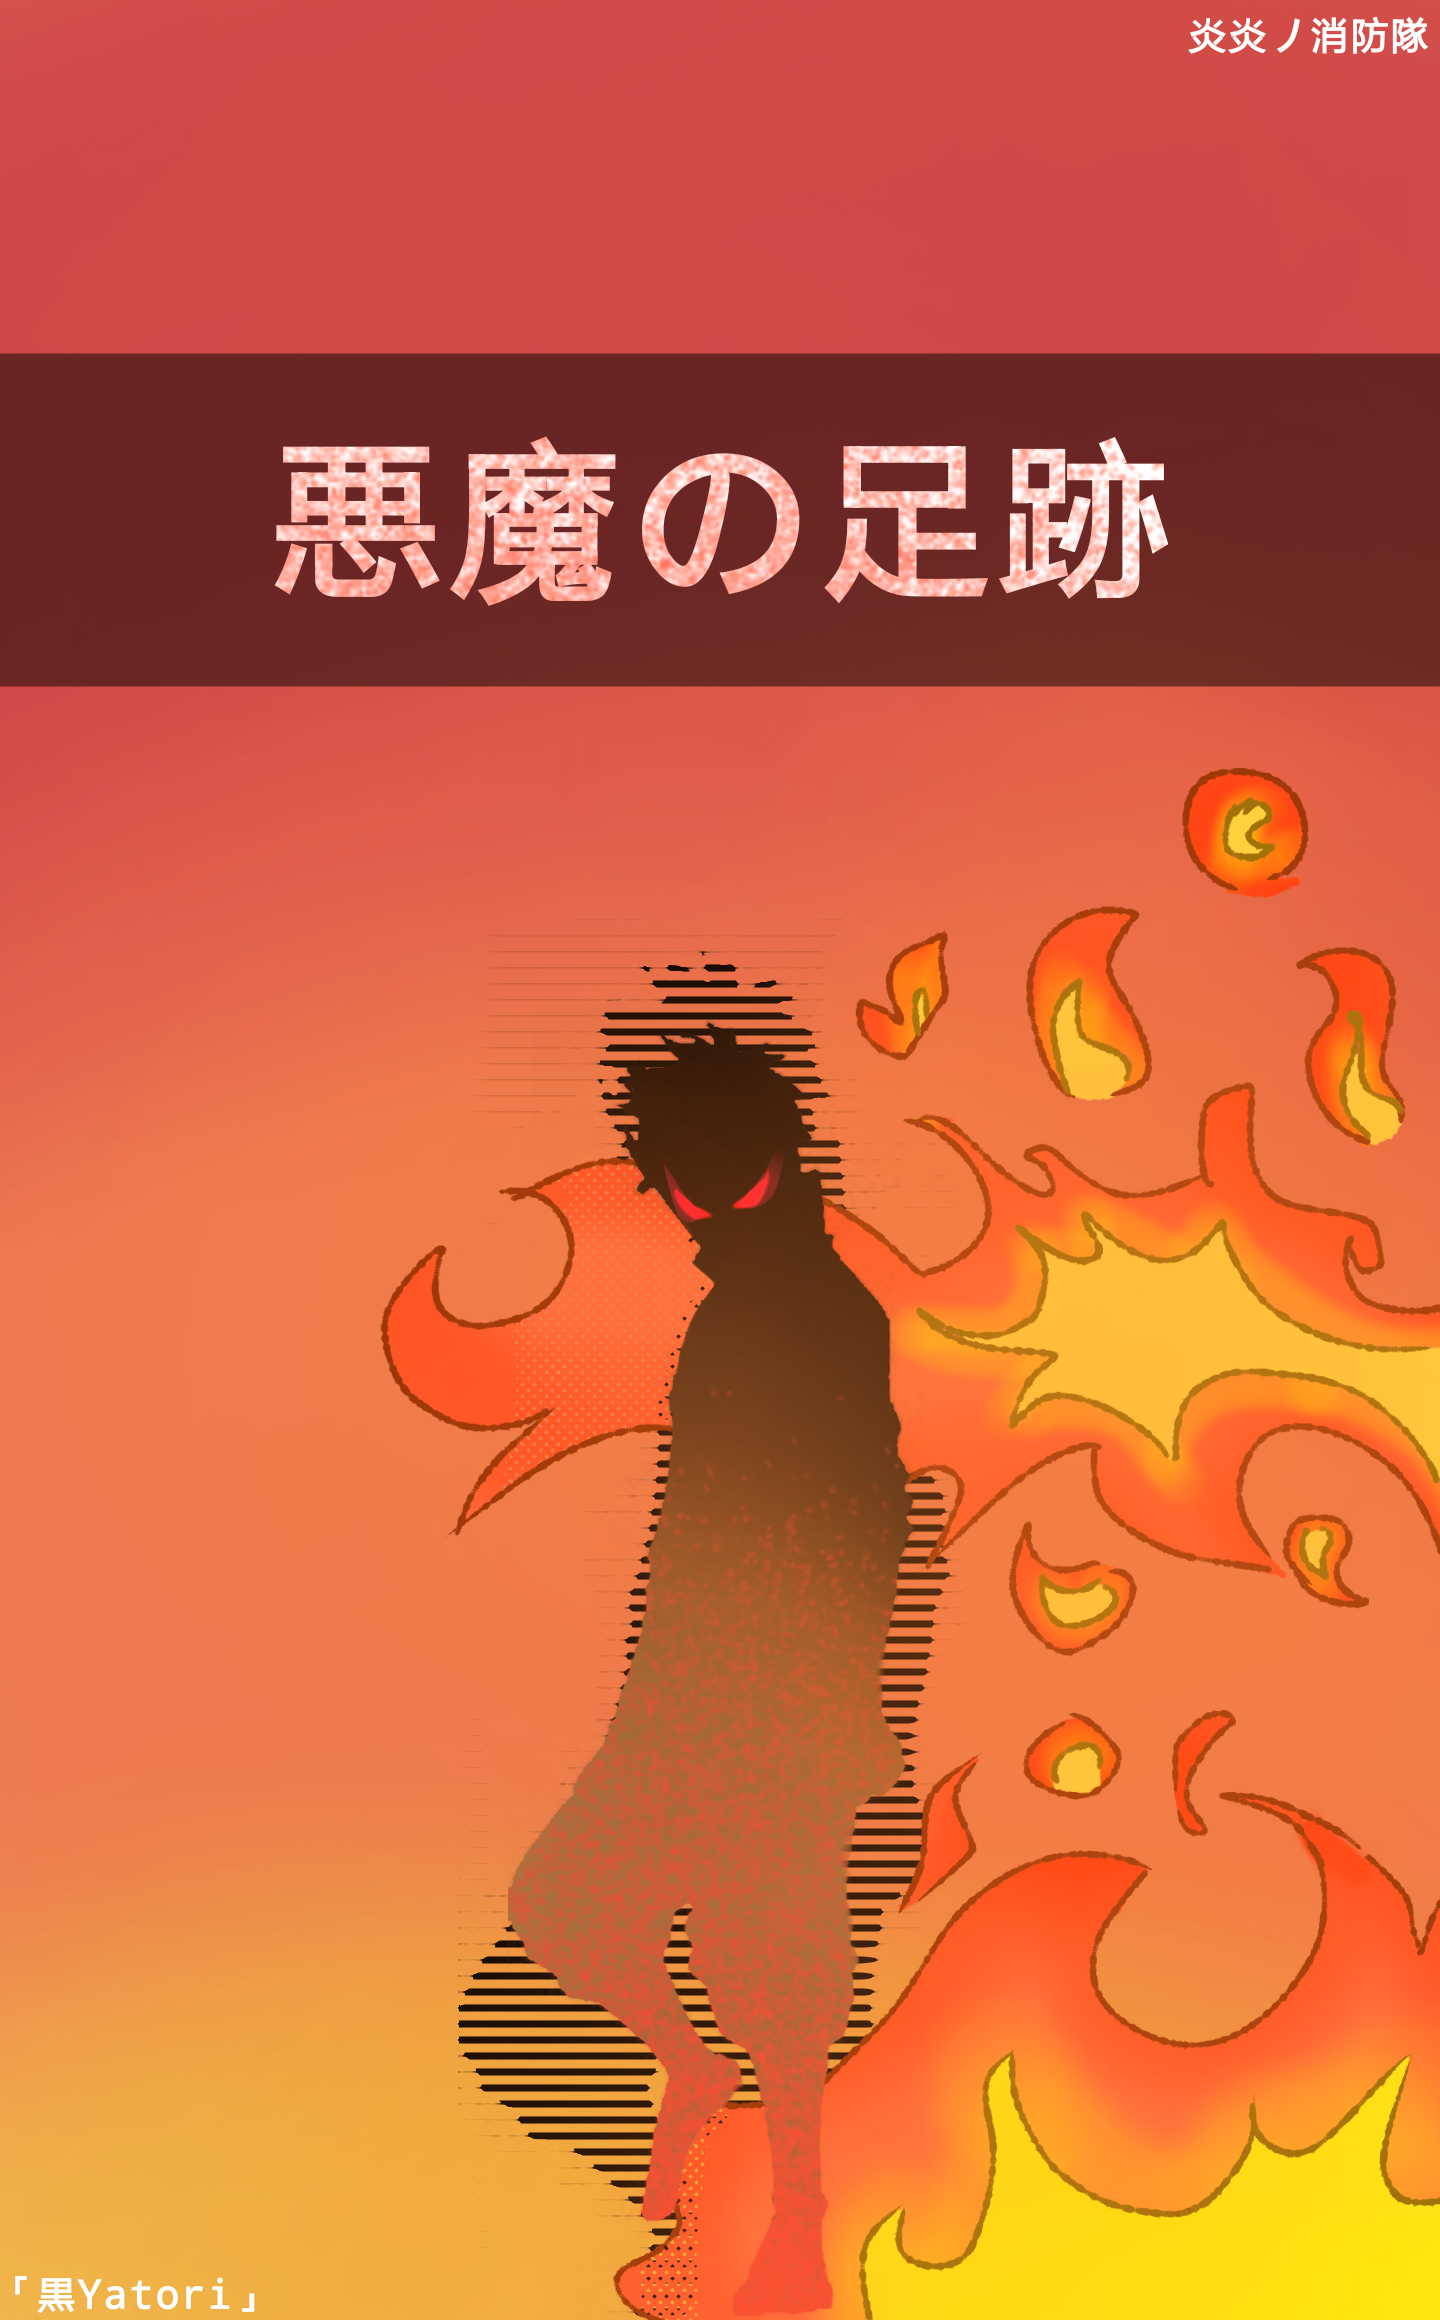 Fire Force Wallpaper Posted By Sarah Thompson Aesthetic fall colors home screen pack for iphone ios 14 with an artist touch! fire force wallpaper posted by sarah